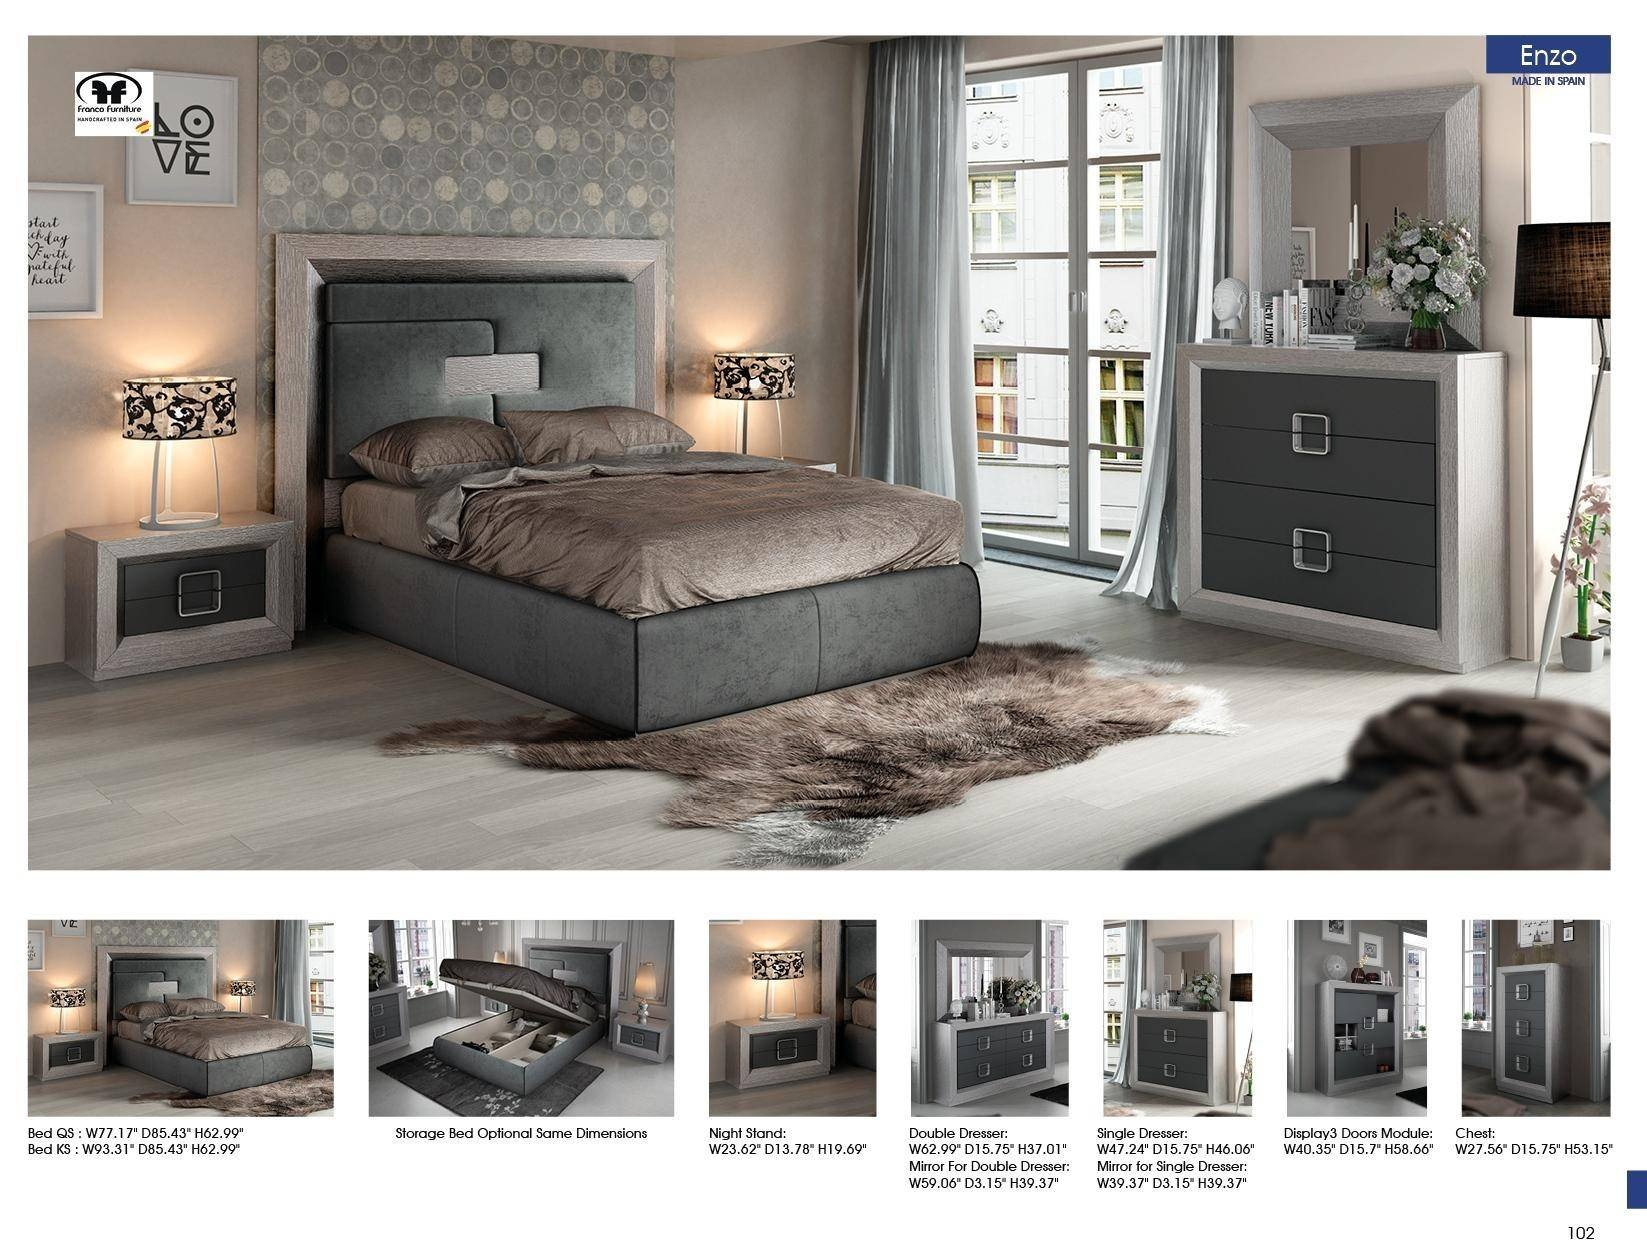 King Bedroom Furniture Set Awesome Esf Enzo King Platform Bedroom Set 5 Pcs In Gray Fabric